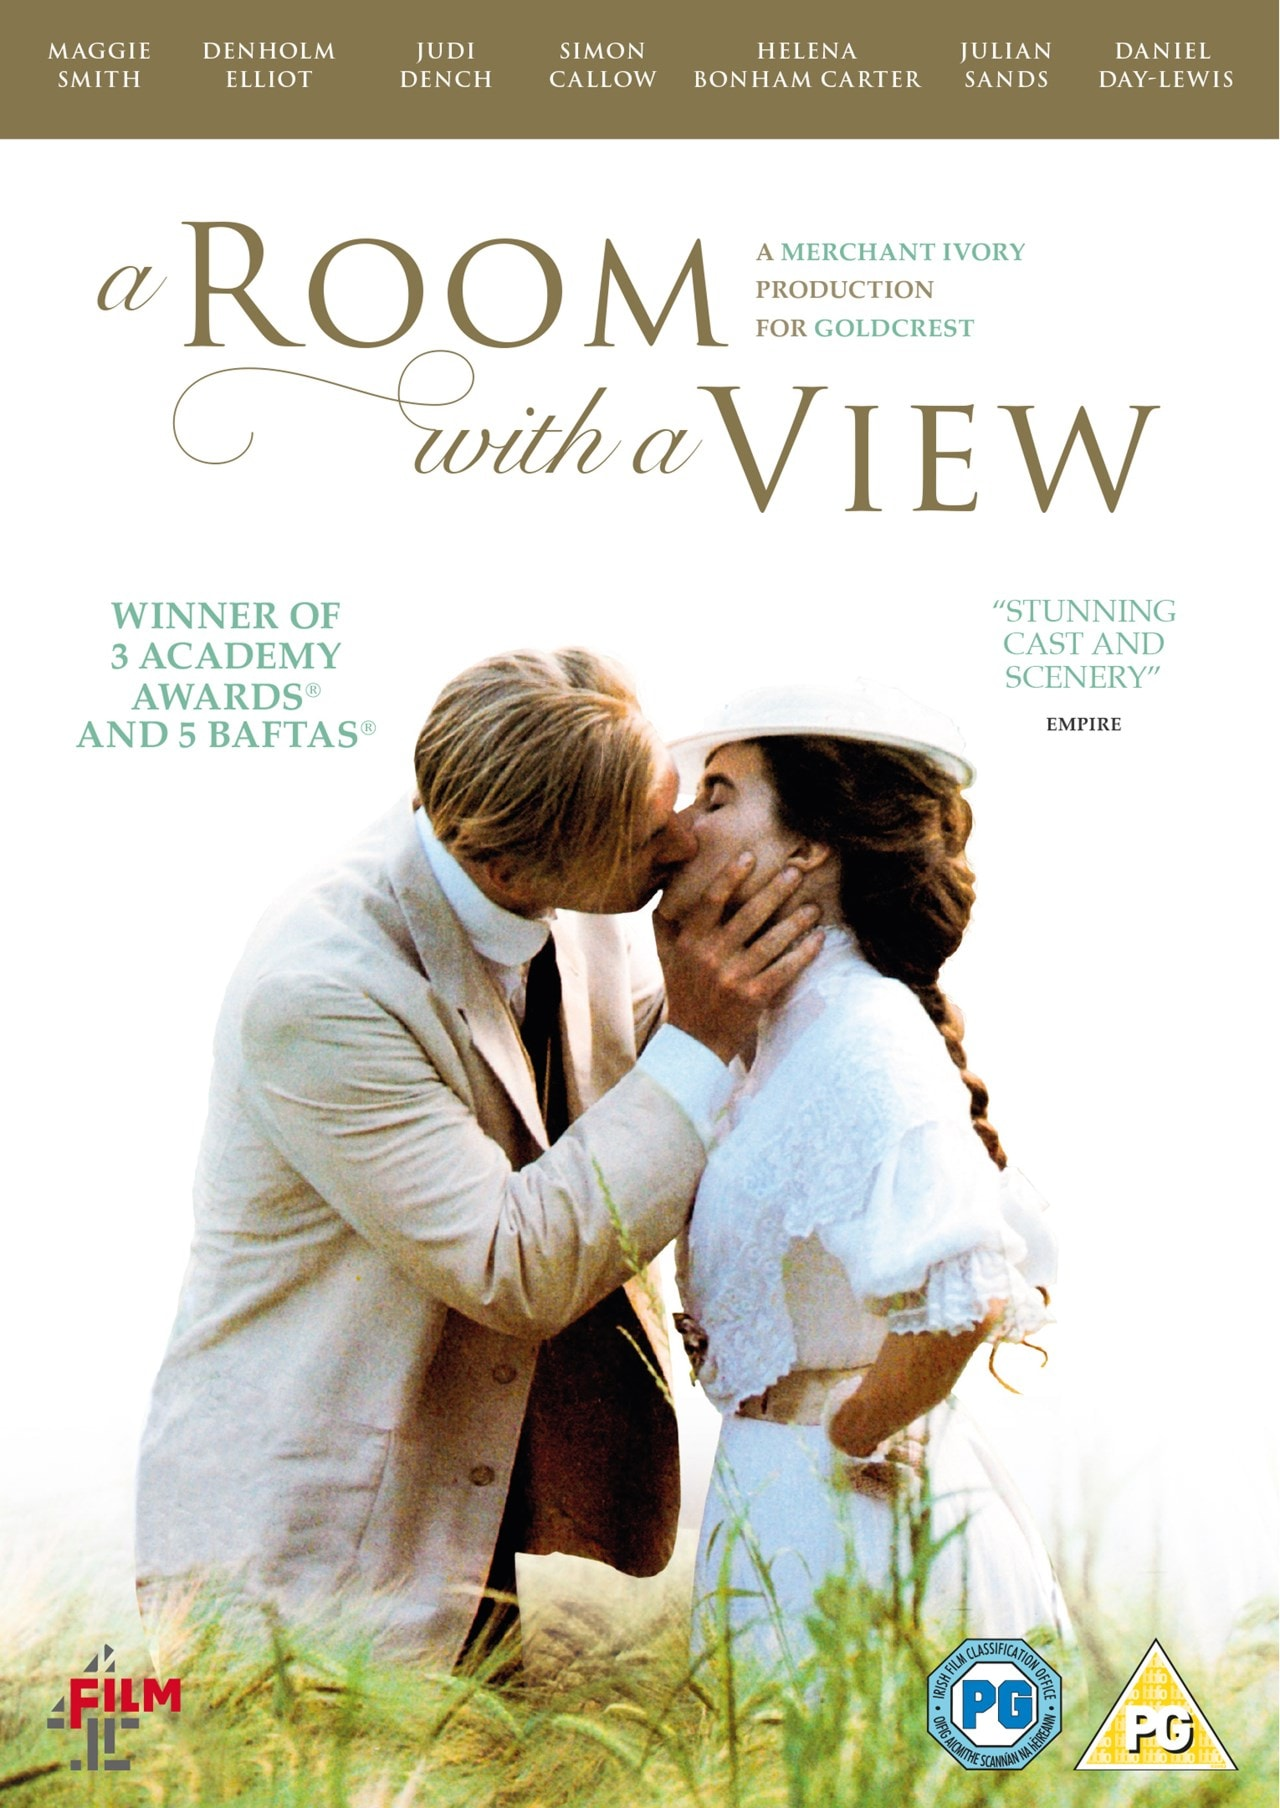 A Room With a View - 1